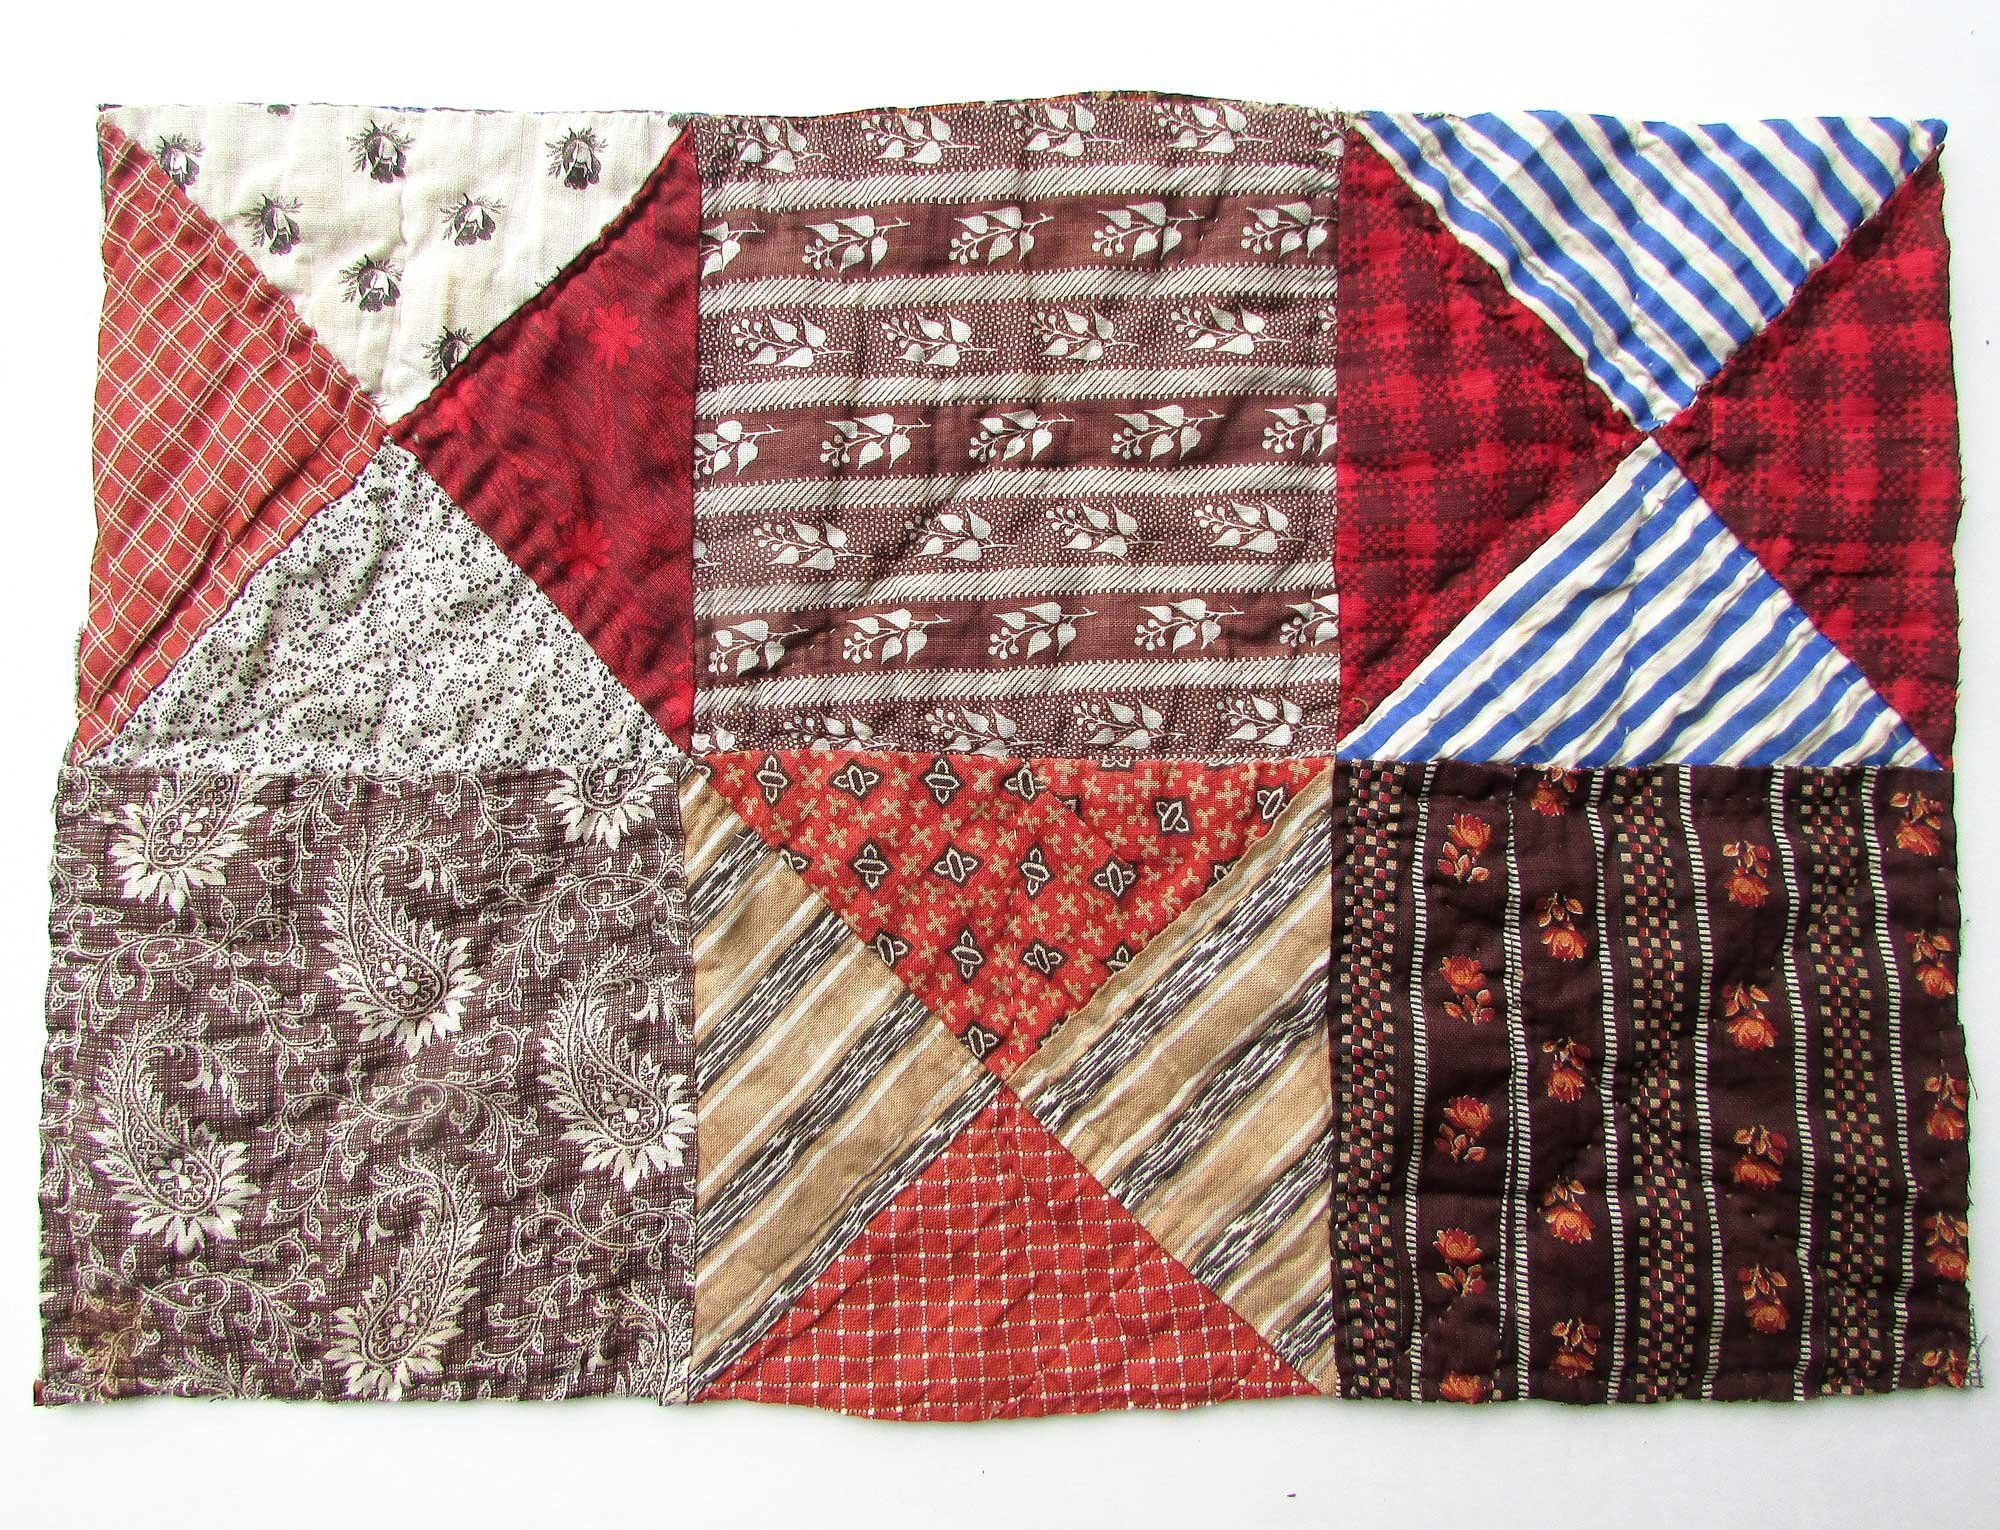 Antique Quilt Section 1890 Vintage Calico Fabrics Table Mat Wall Hanging Patchwork For Creative Uses Hand Stitch Antique Quilt Antique Quilts Calico Fabric